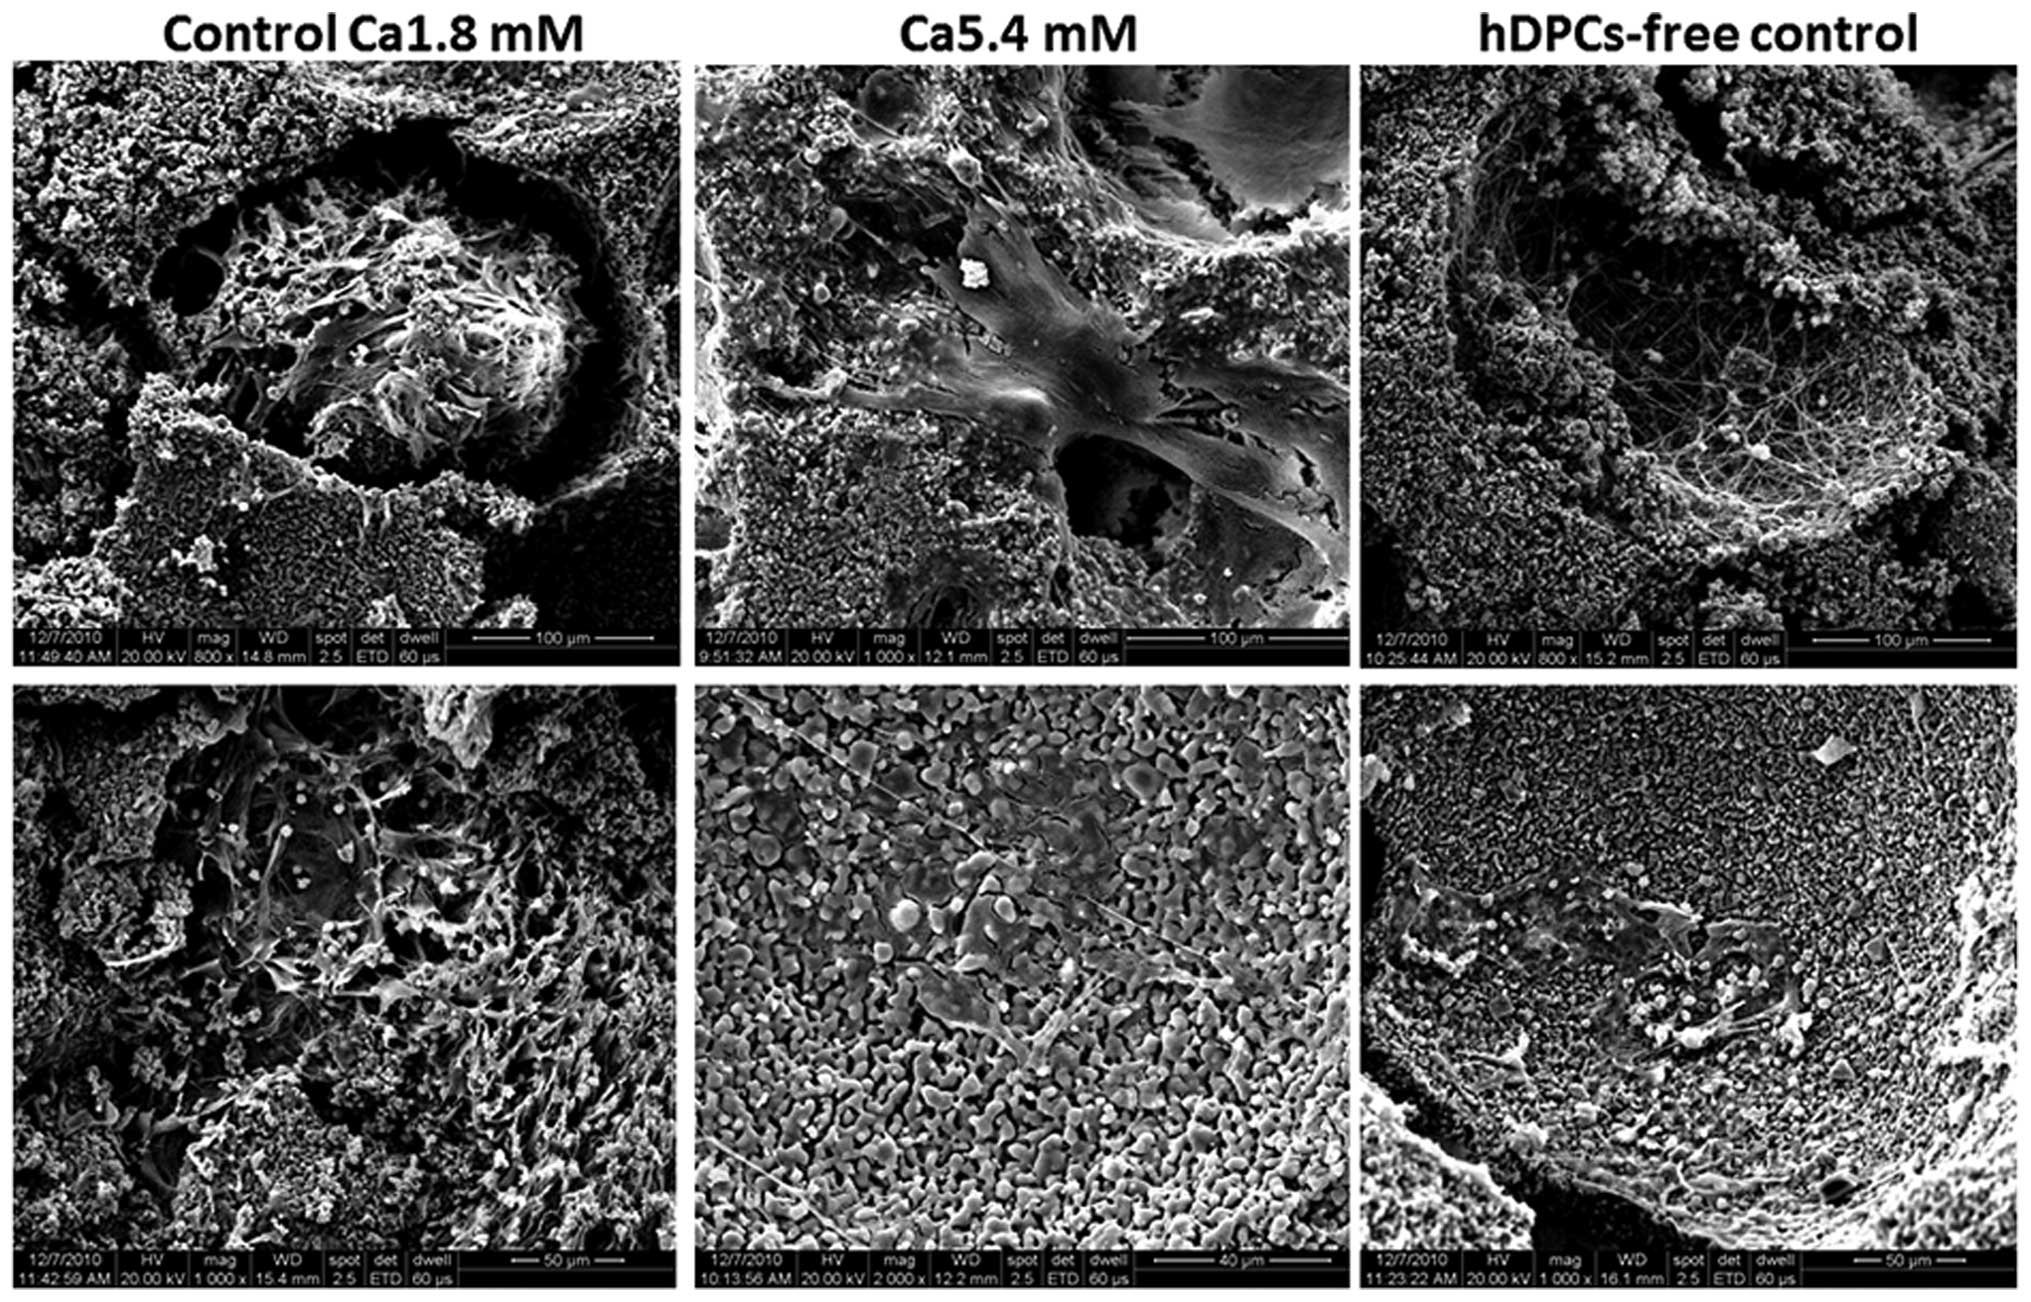 Short Term Effects Of Calcium Ions On The Apoptosis And